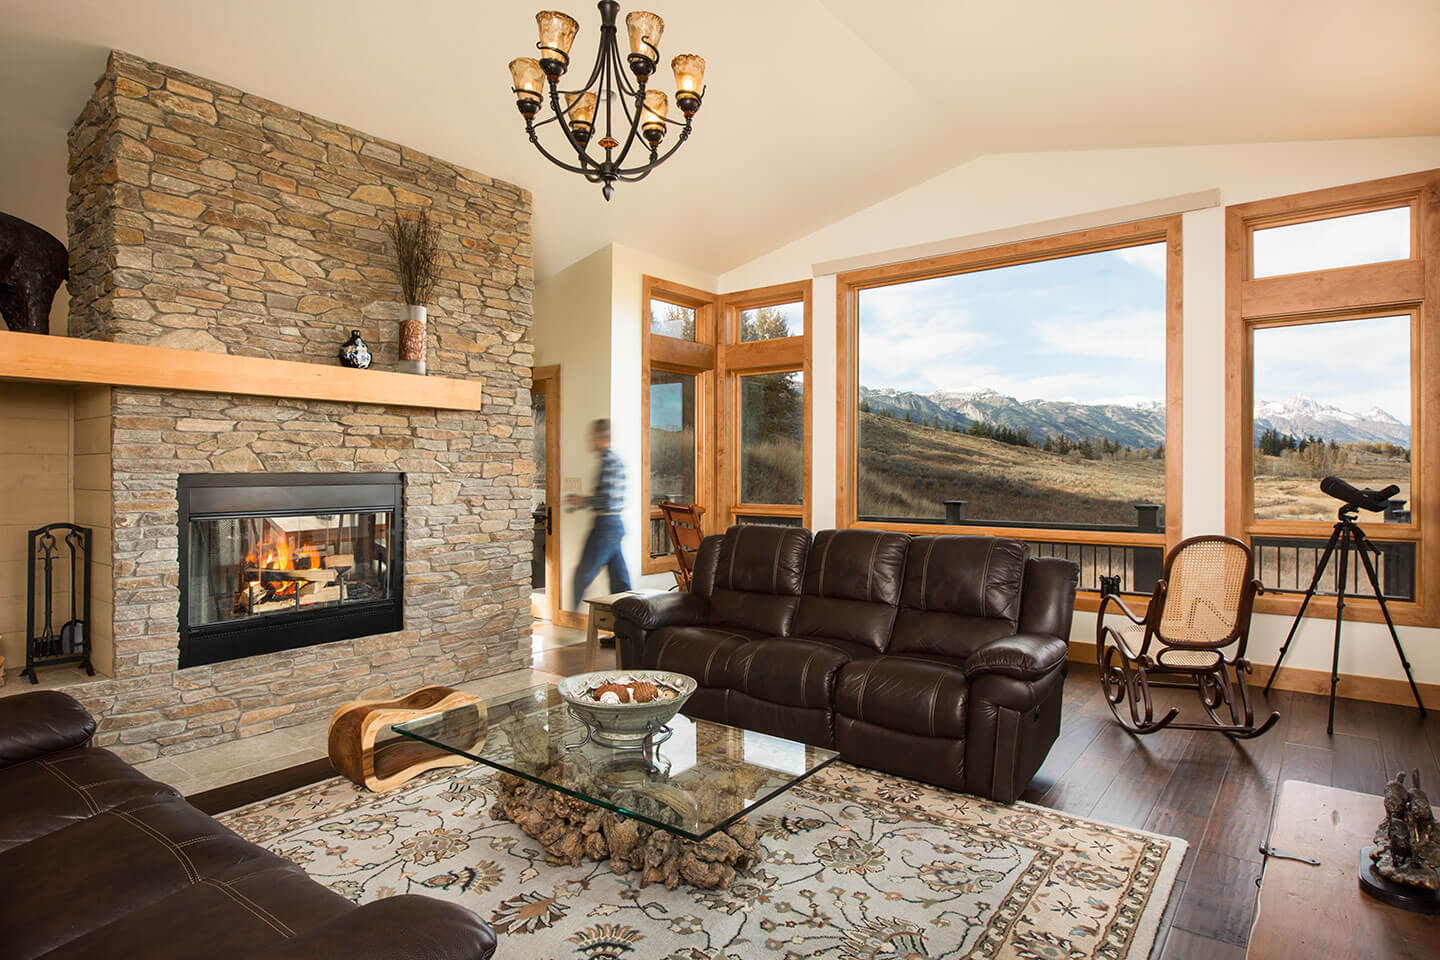 Living room with native stone and view toward the mountain range